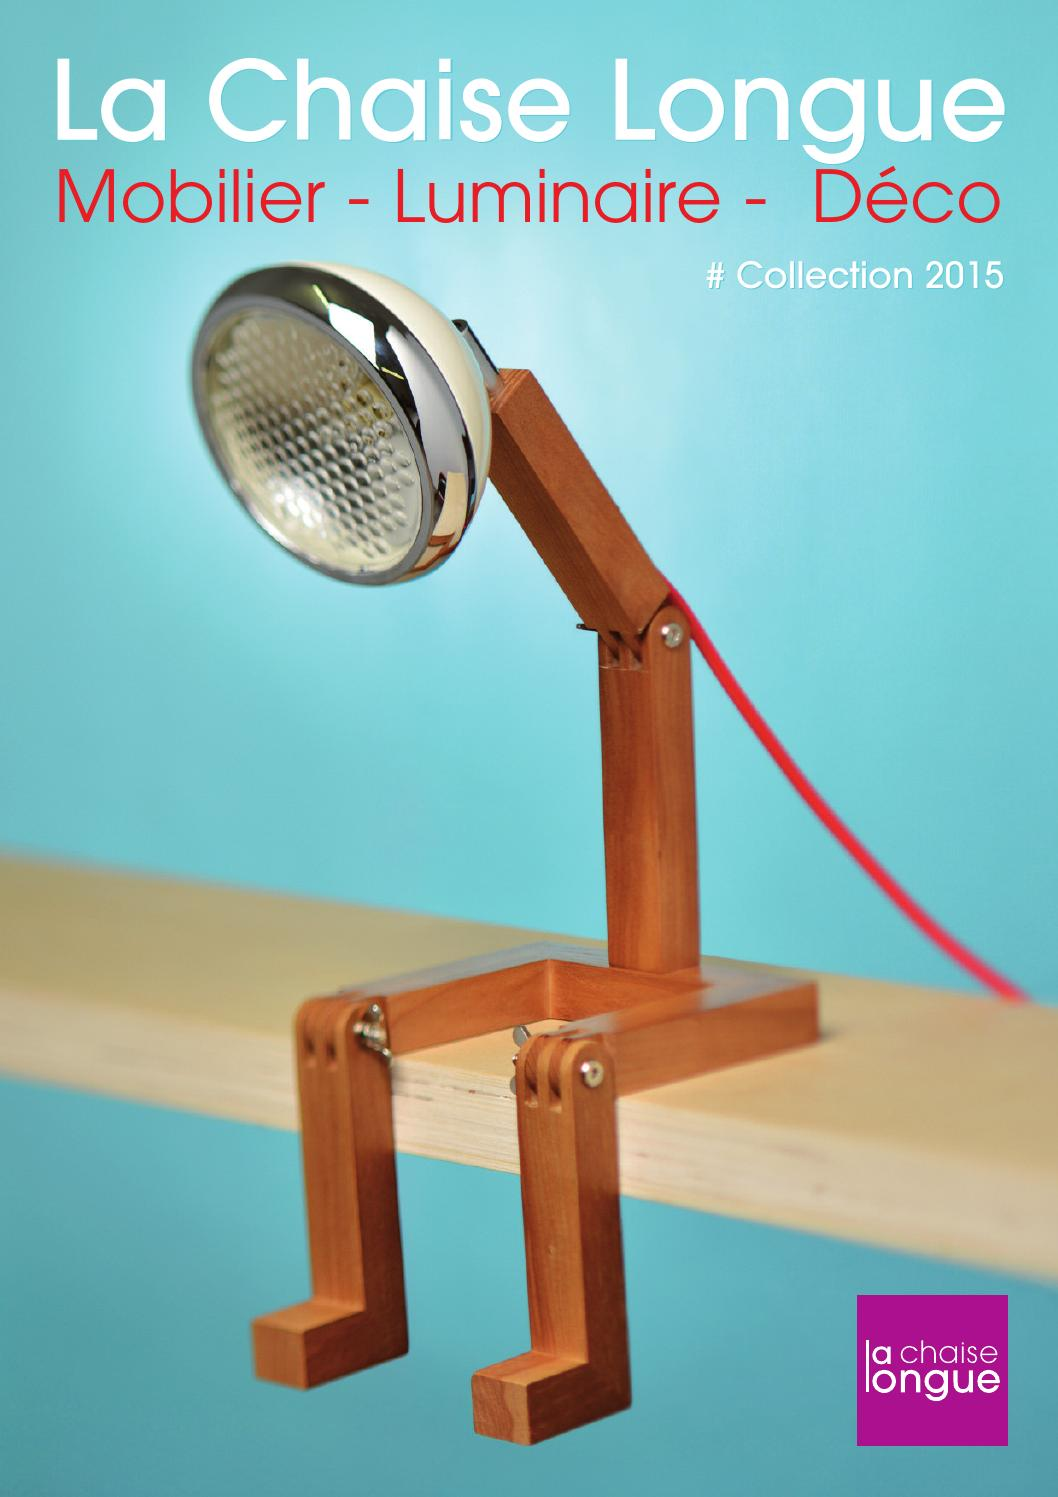 Mobilier2015 by la chaise longue issuu for Chaise longue interieur